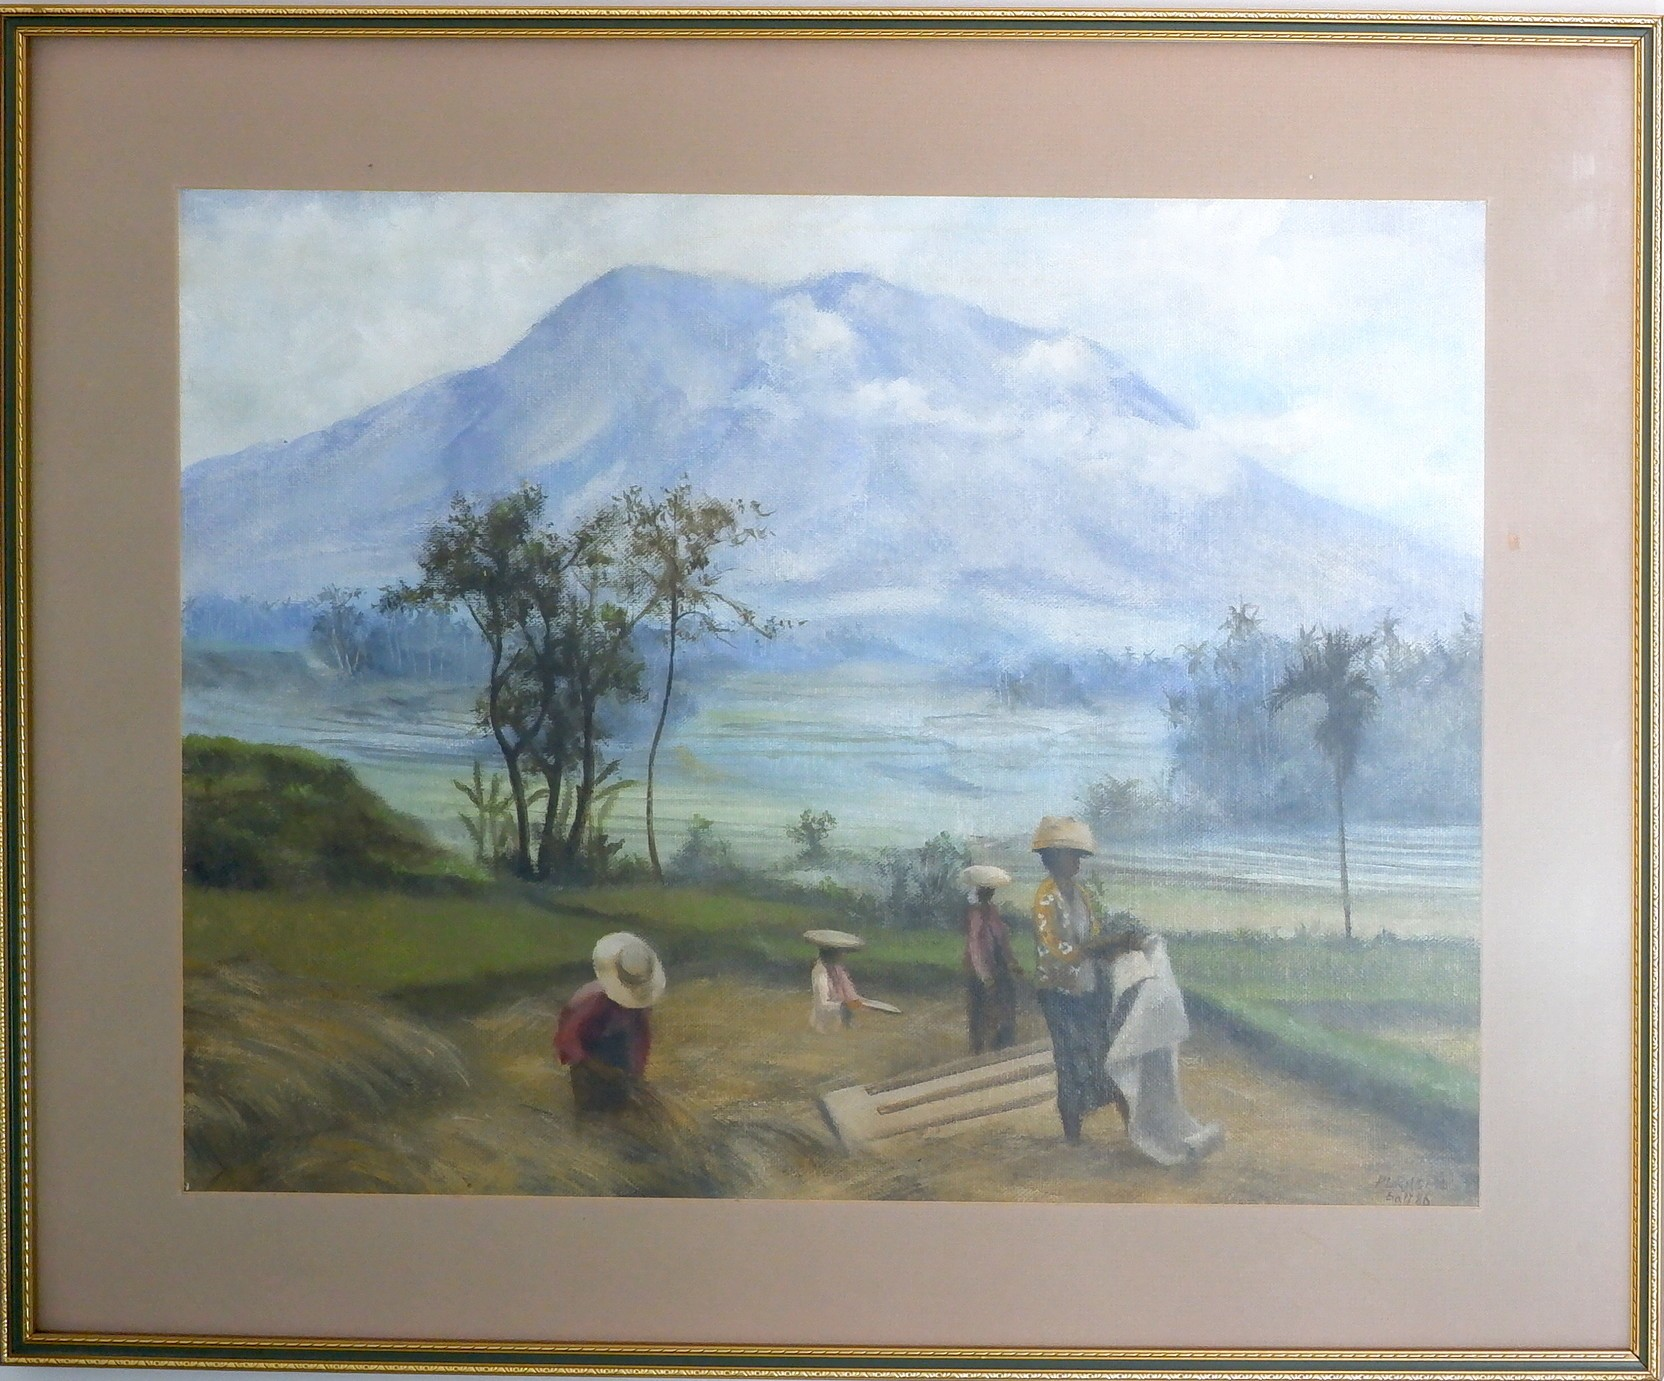 'Balinese Oil on Canvas Signed Purnomo 1986'